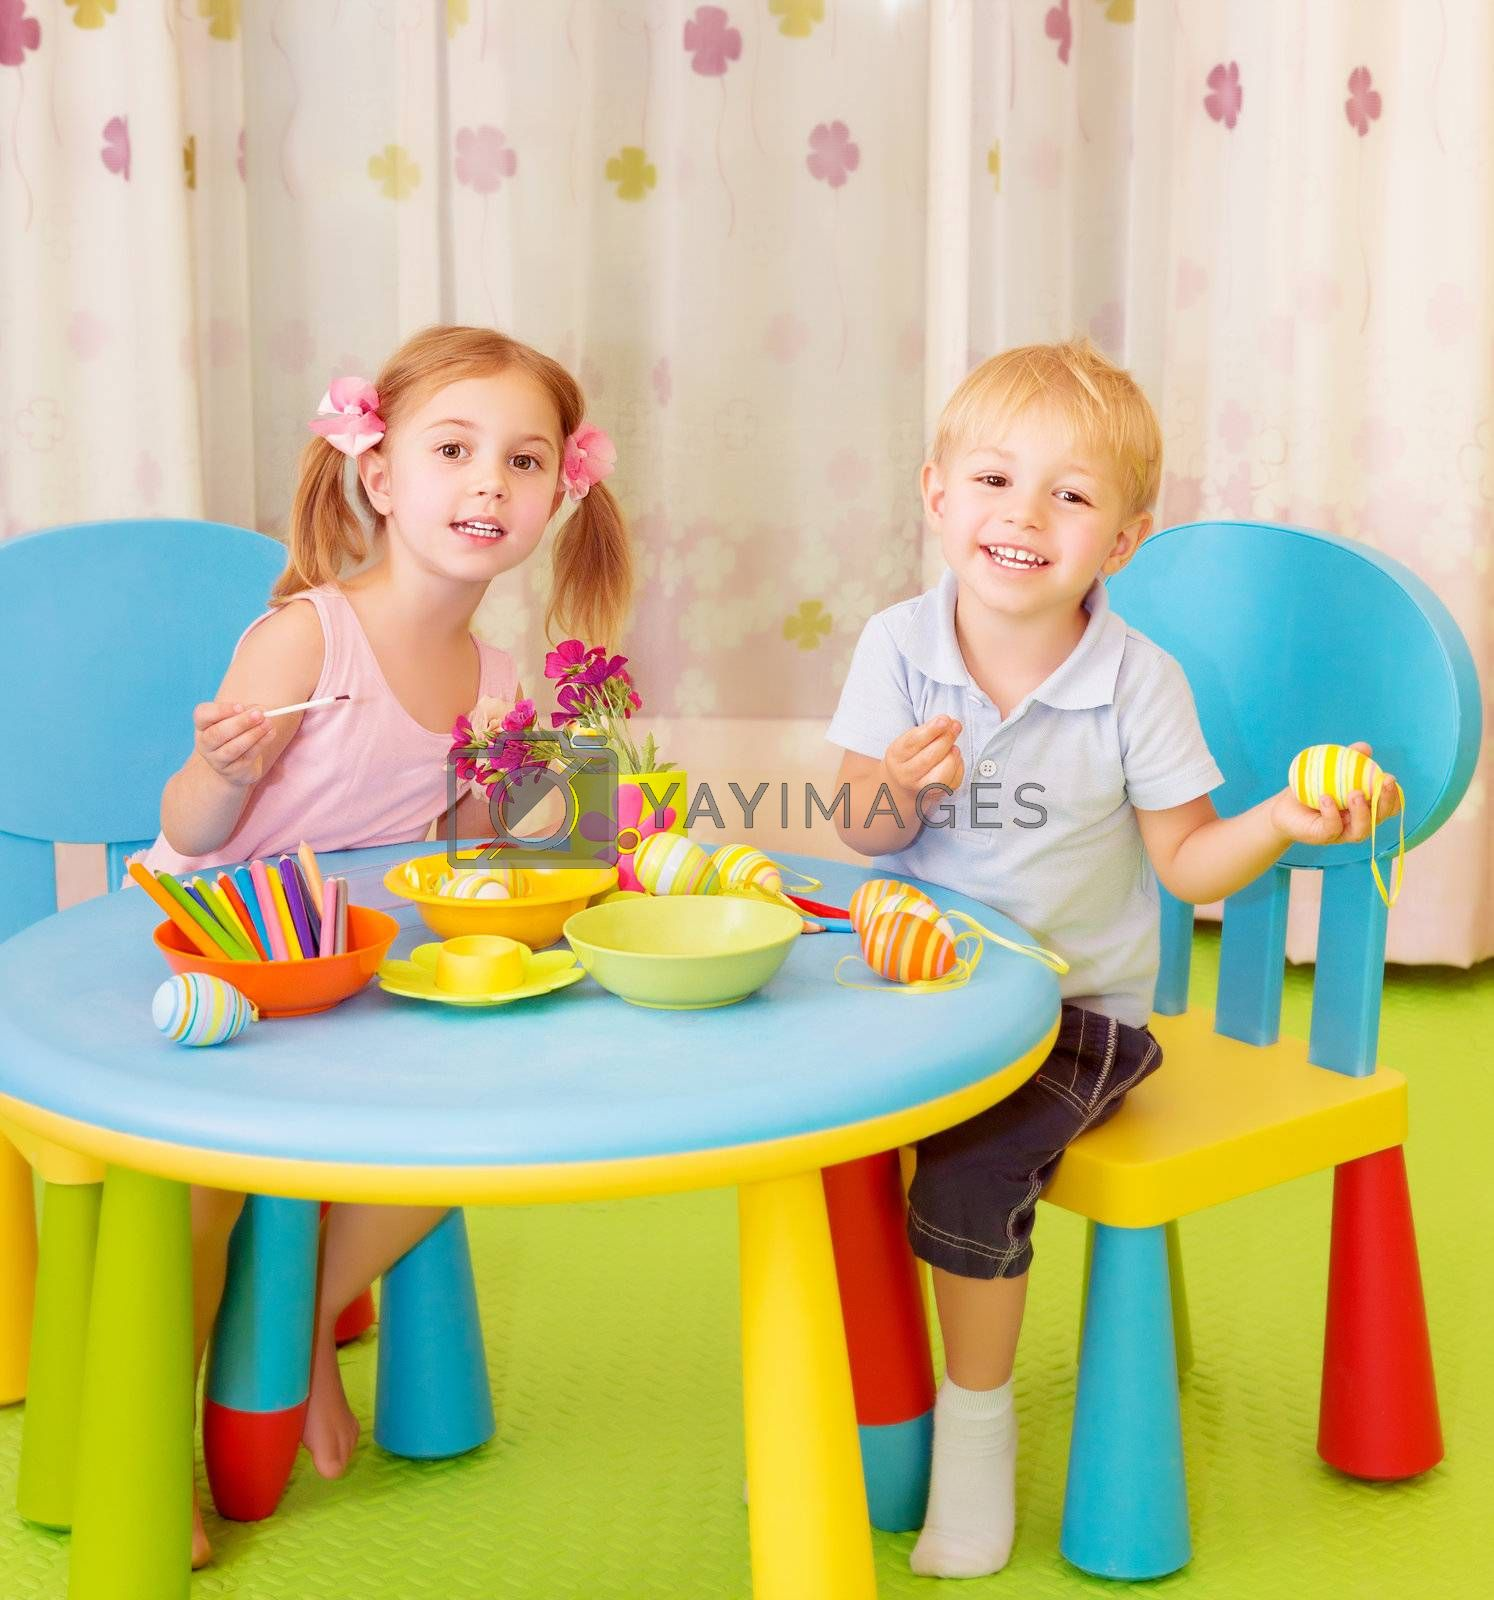 Two cheerful kids paint Easter eggs at home, handmade festive decorations, spring holiday, happiness concept